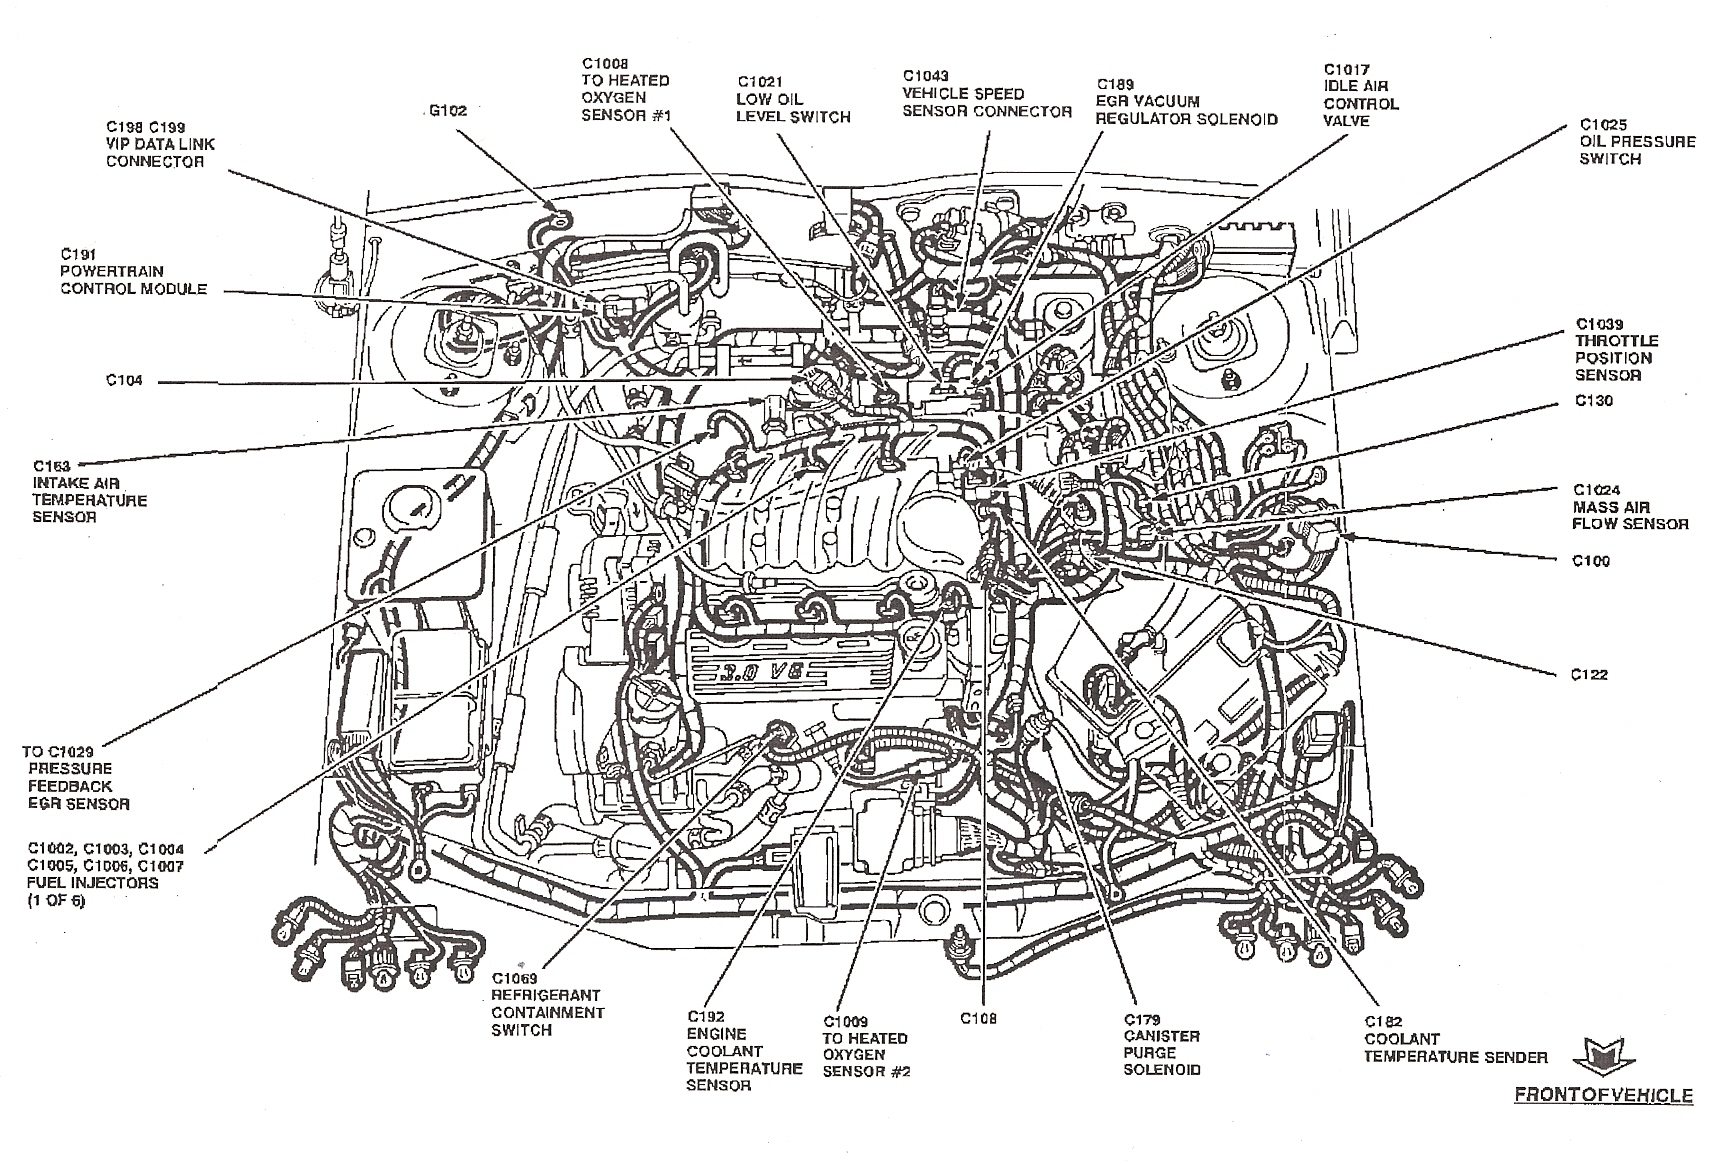 94 taurus jbl stereo wiring diagram 100 images 2012 avenger  at creativeand.co